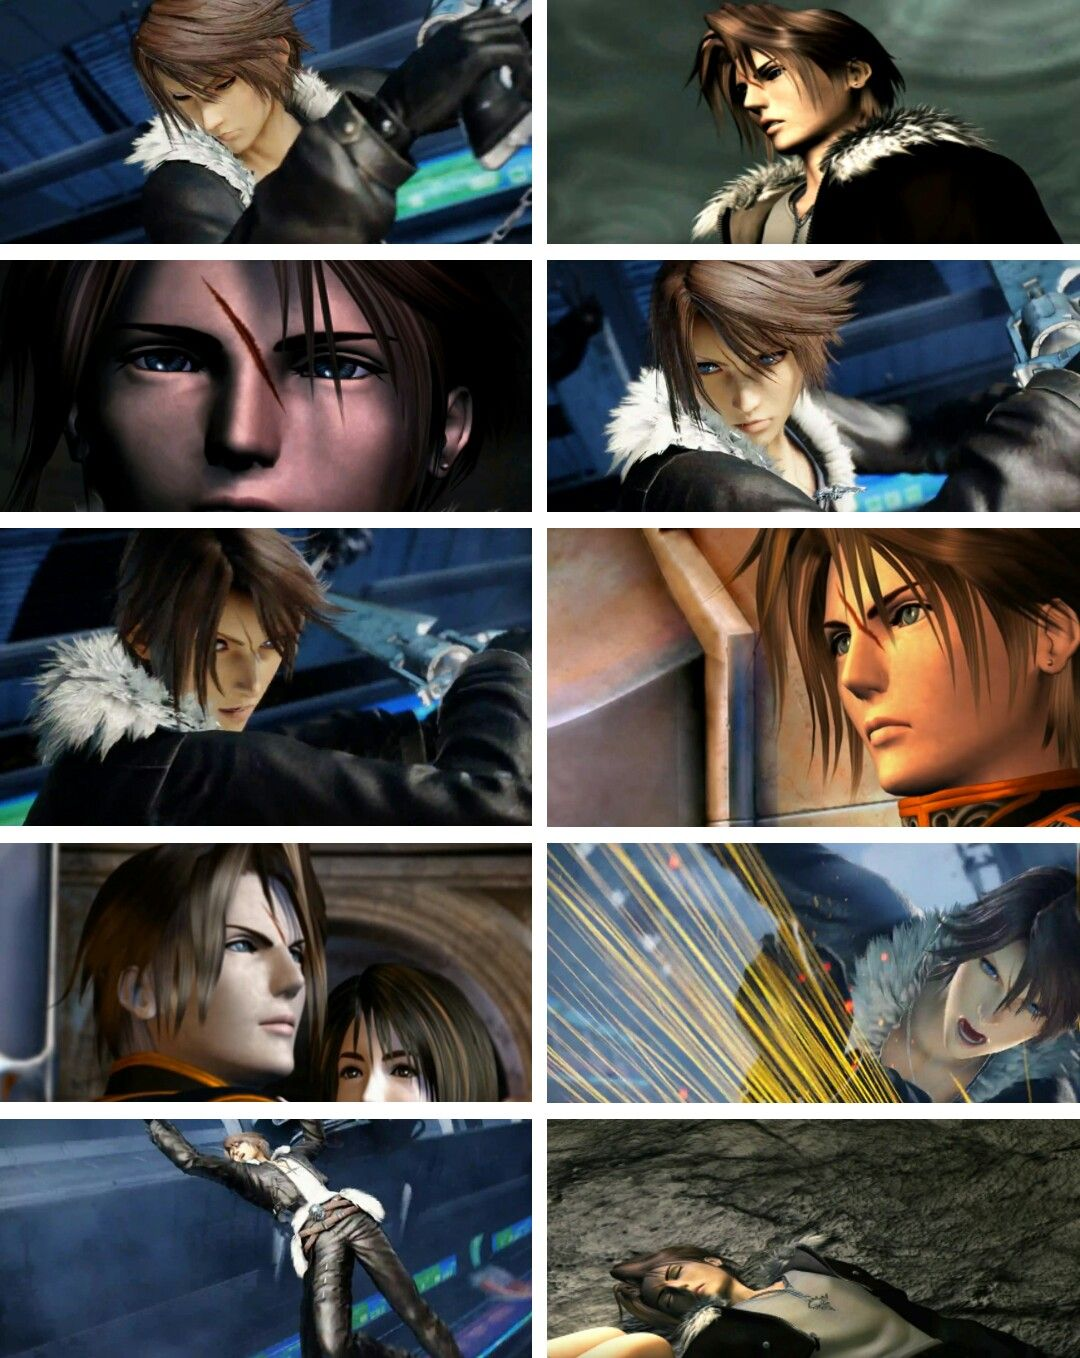 Final Fantasy Anime Porn squall leonhart then/now | eternally ff8 | final fantasy vii